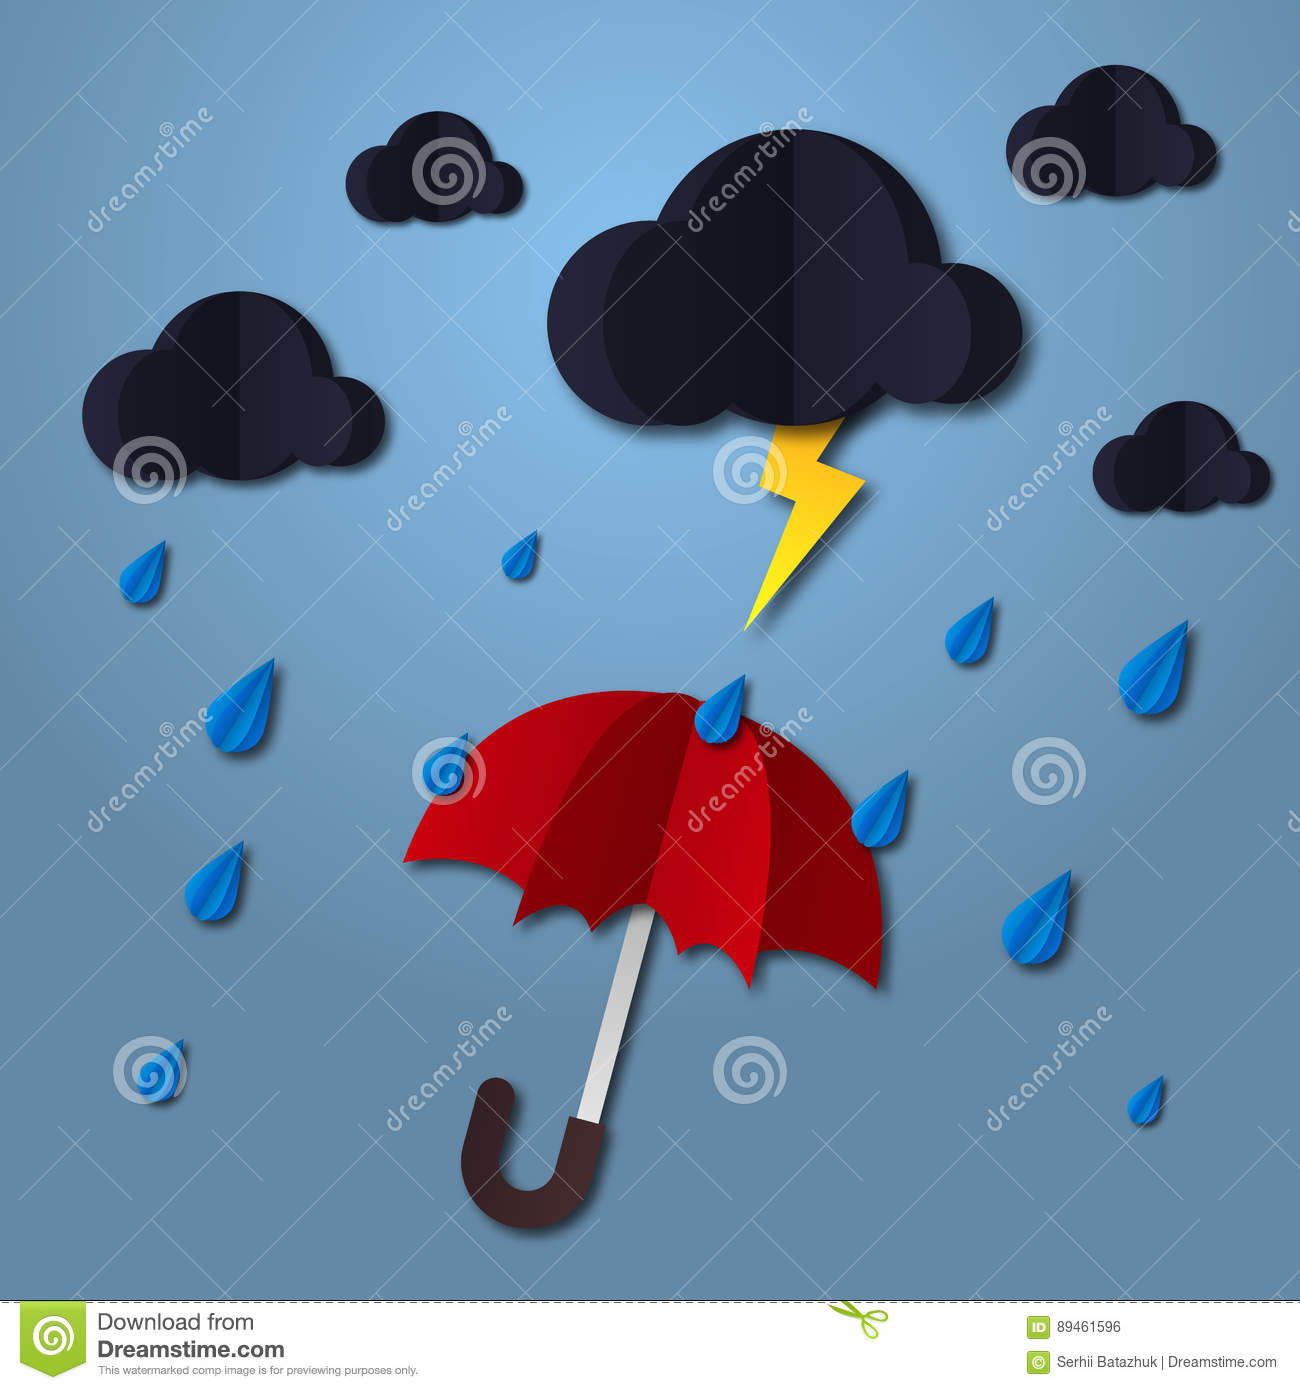 Download Umbrella In The Air With Cloud And Rain Paper Art Style Projects Template